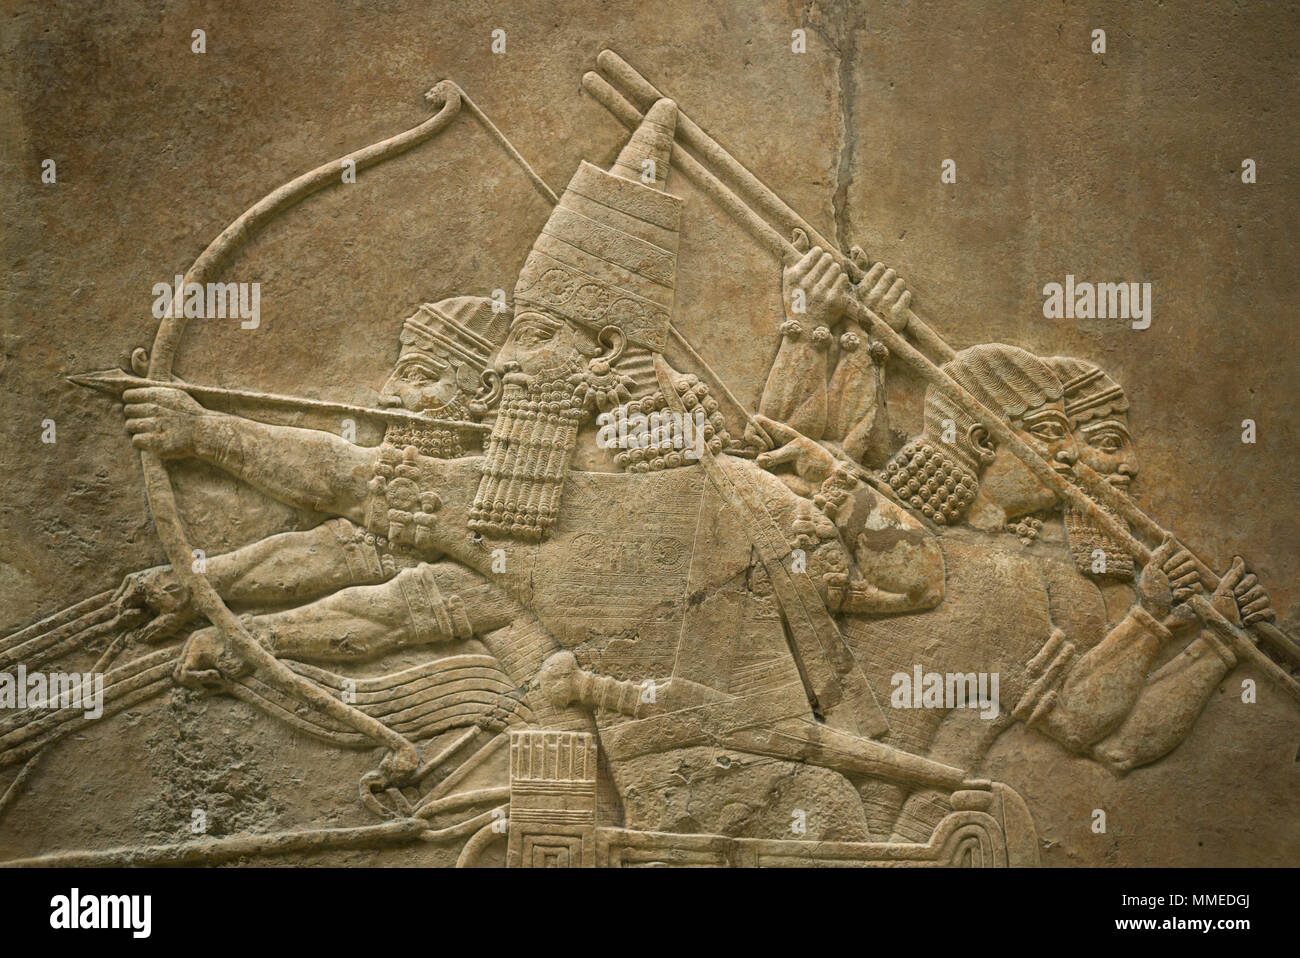 London. England. British Museum. King Ashurbanipal Hunting Lions. Stone wall panel relief, (645-635 BC) from the North Palace of (Room C, Panel 7-8),  - Stock Image